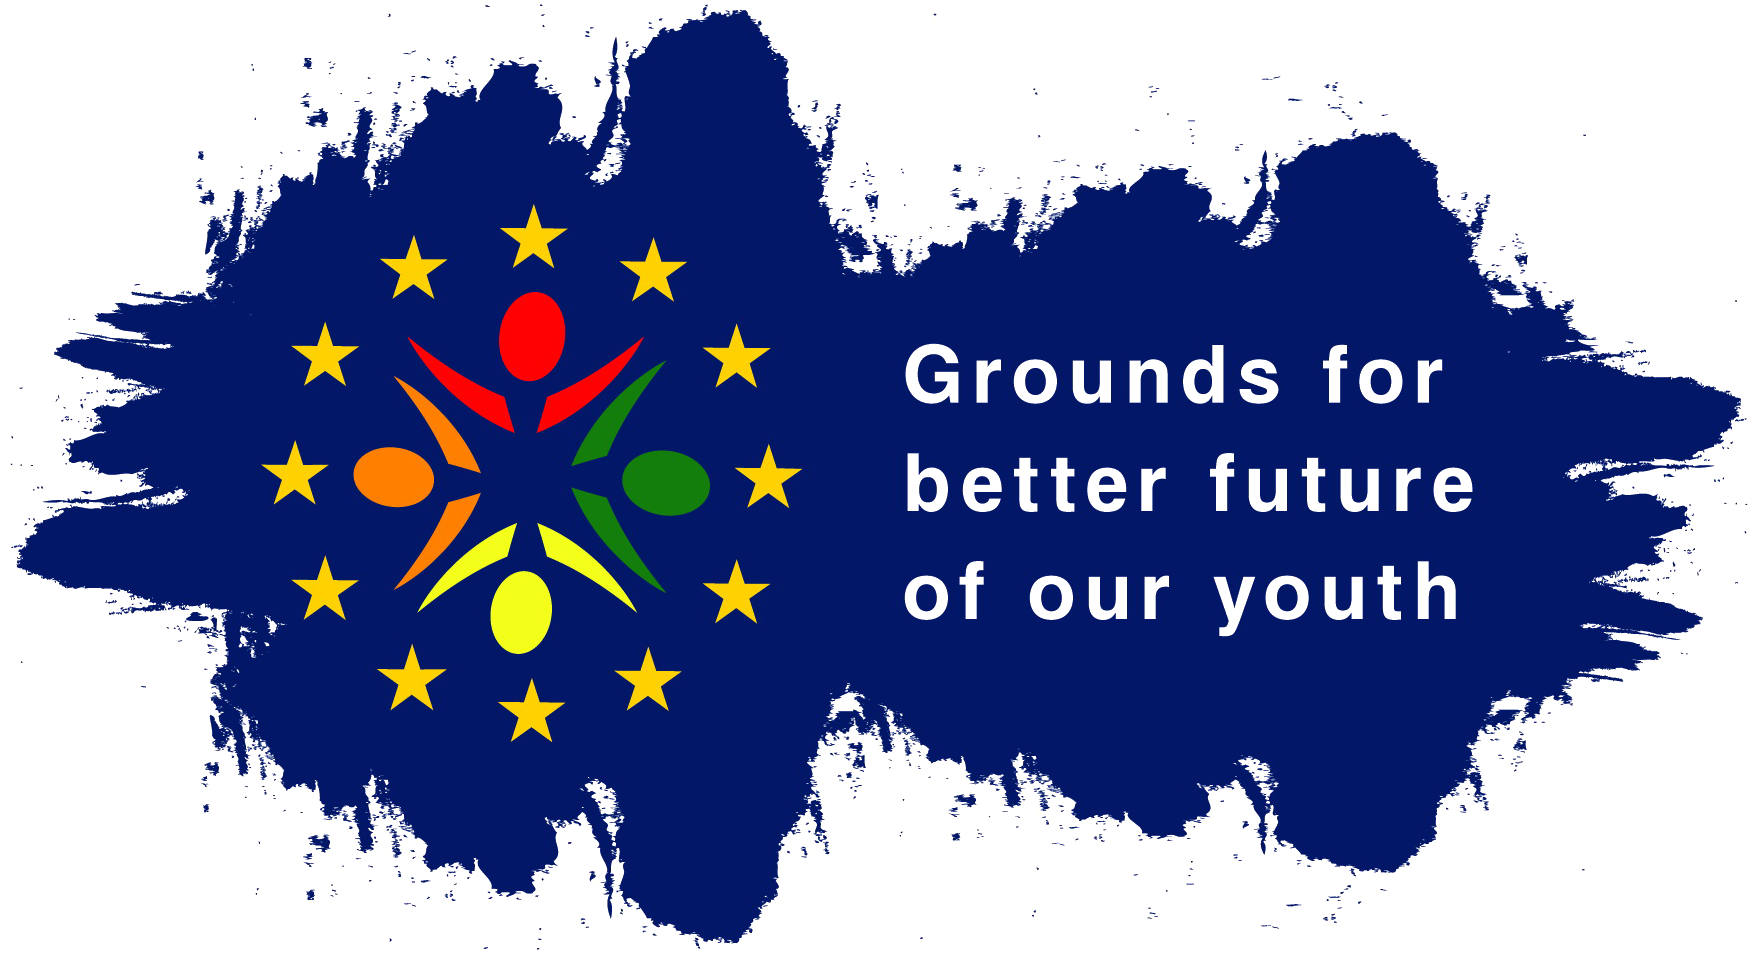 Grounds for better future of our youth